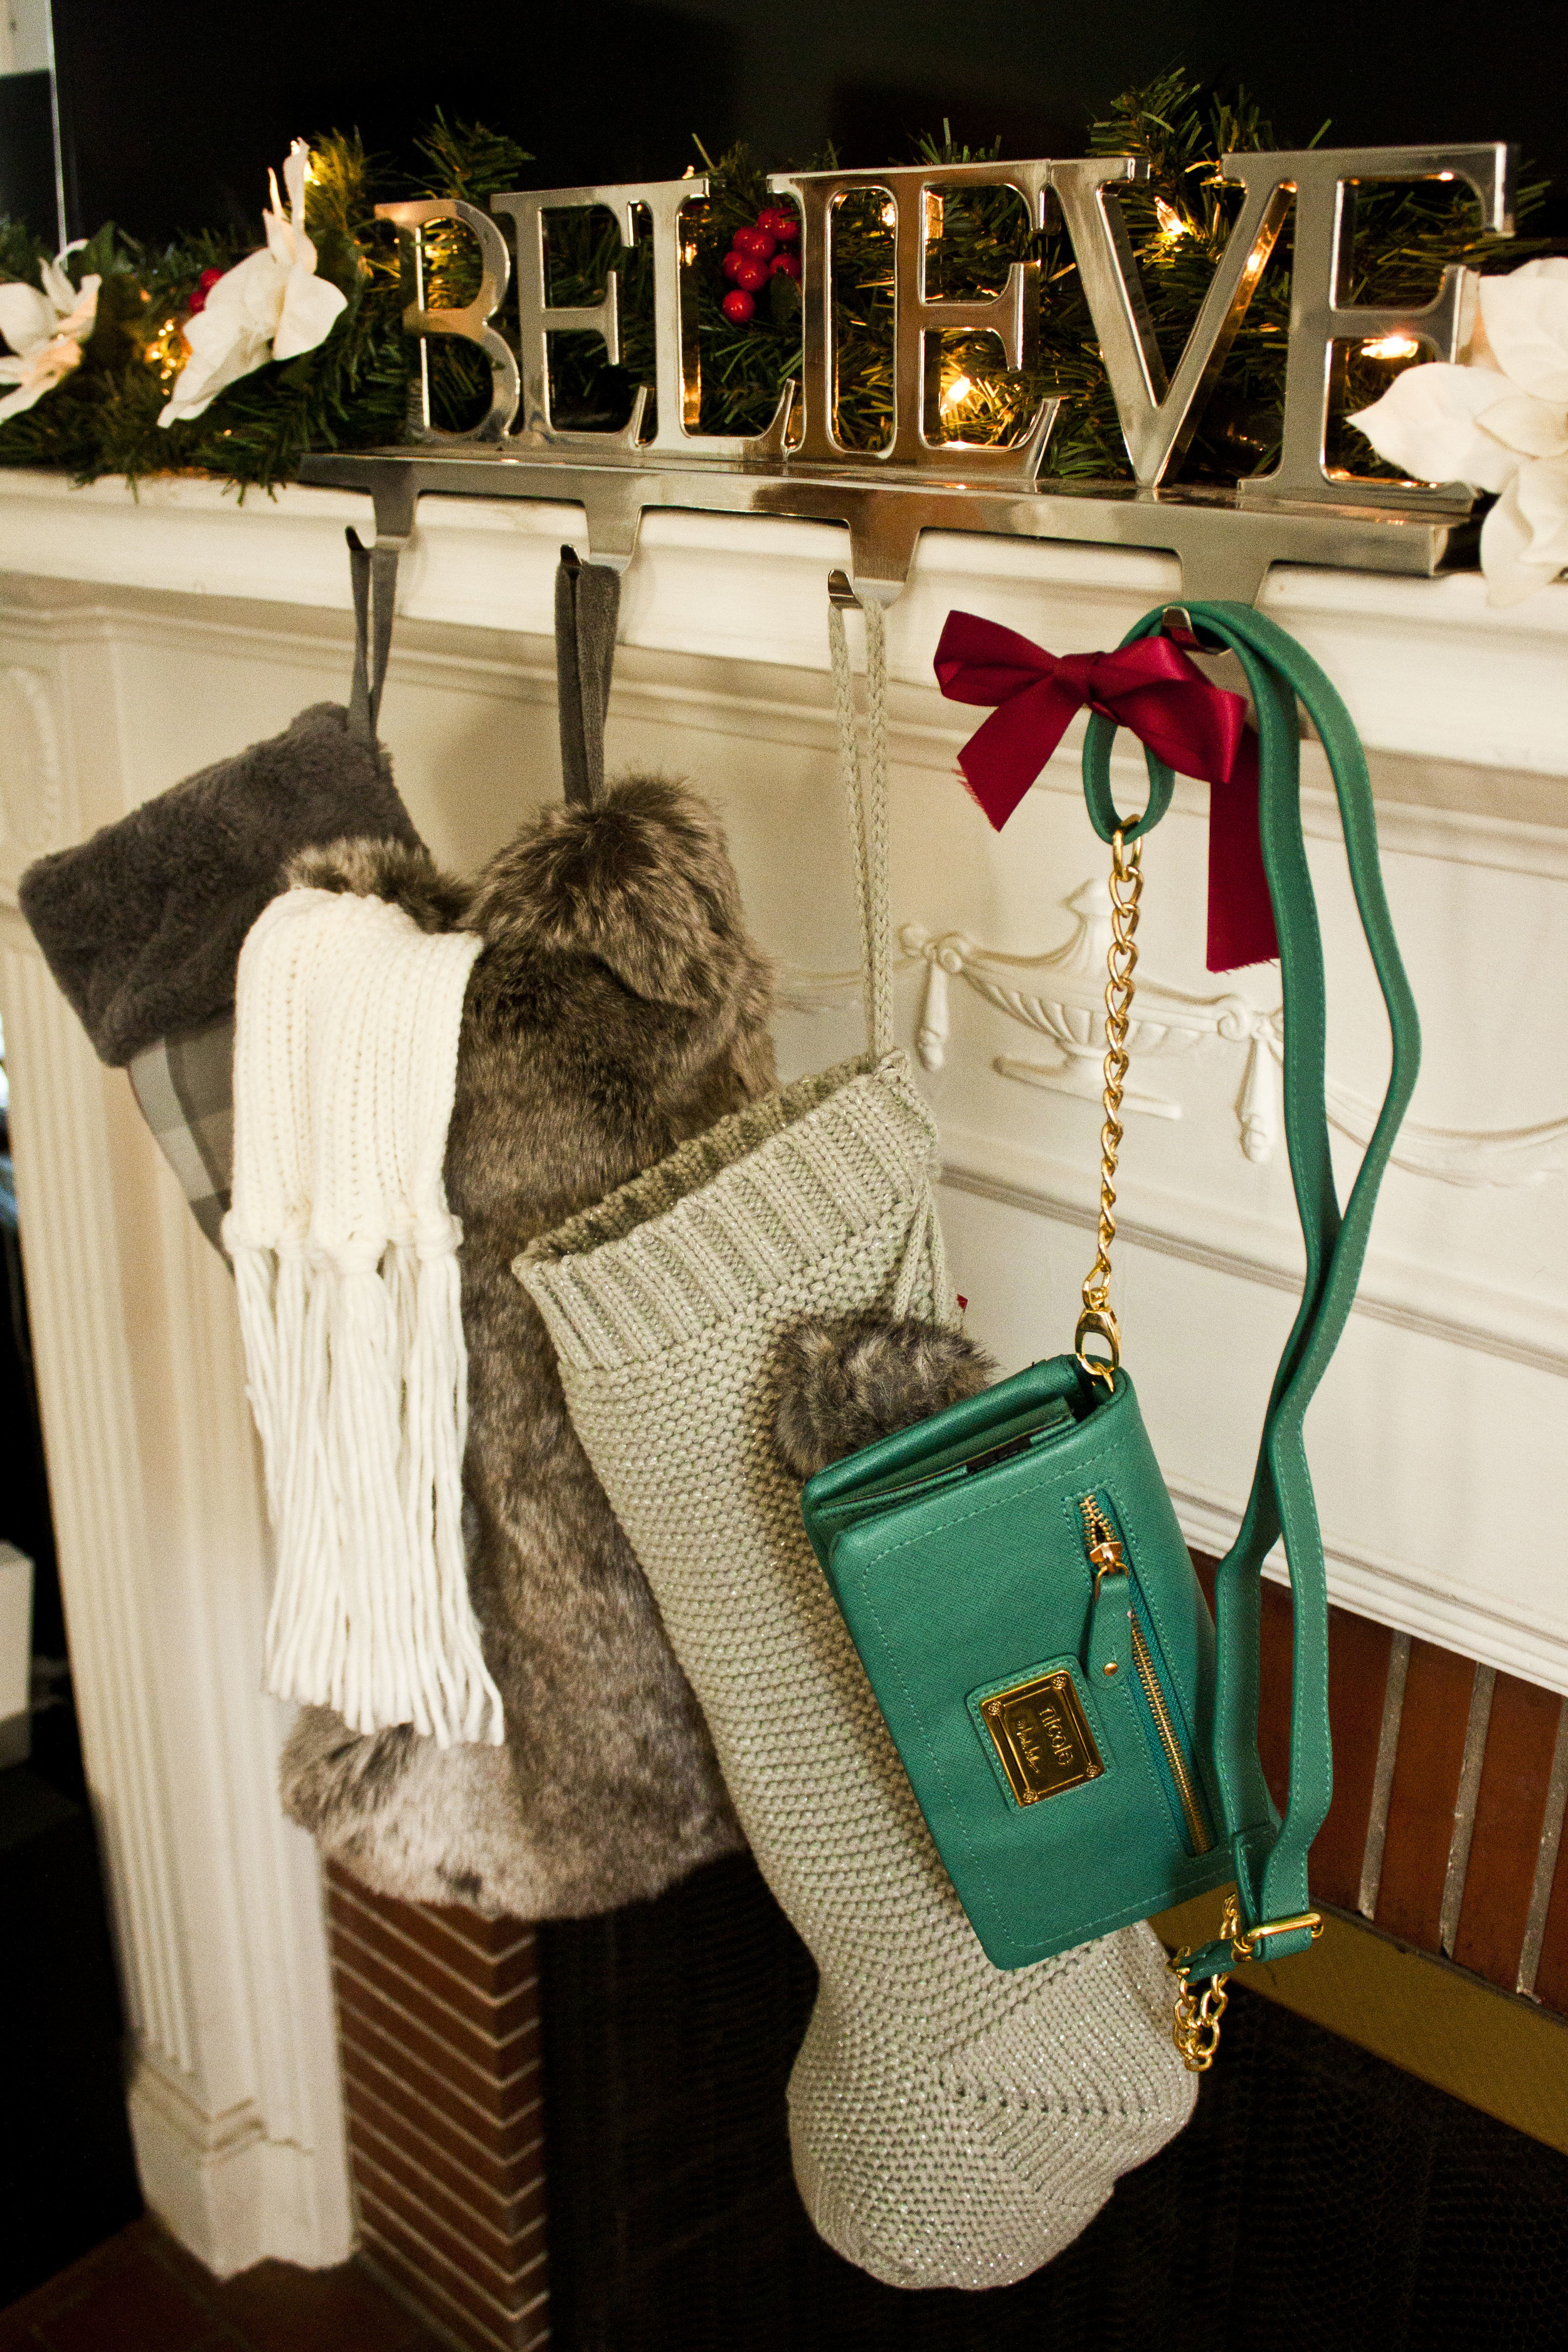 Great stocking stuffer ideas for her: the Mixit shaker scarf and Nicole Miller wallets